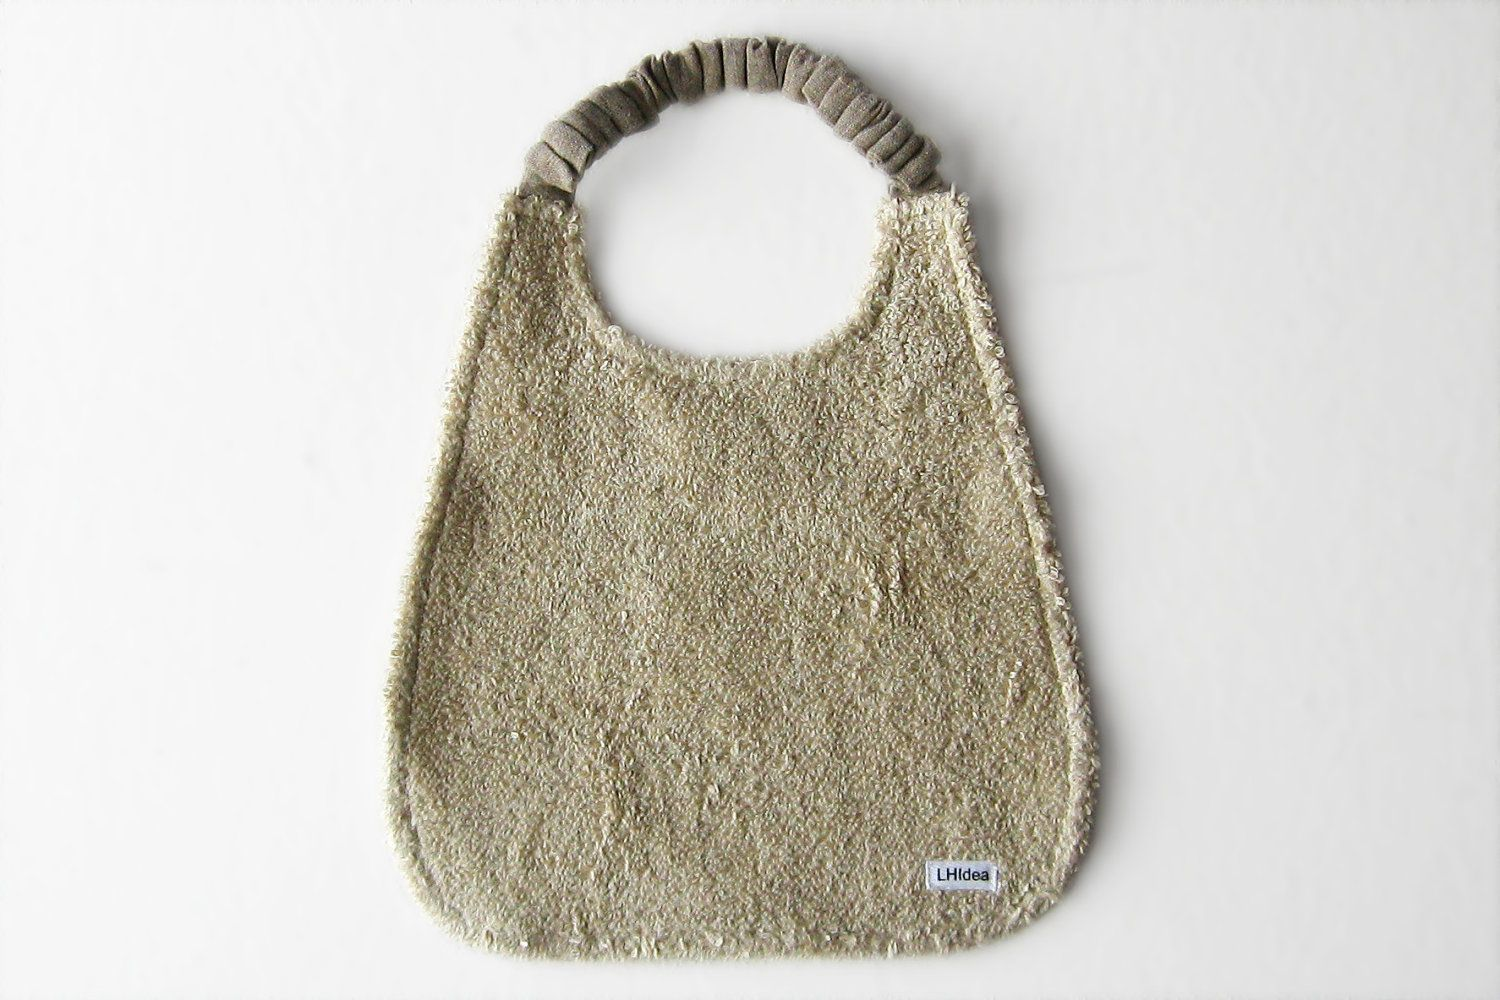 Bib for your Child by Lovely Home Idea. Terry linen with elastic neck strap.